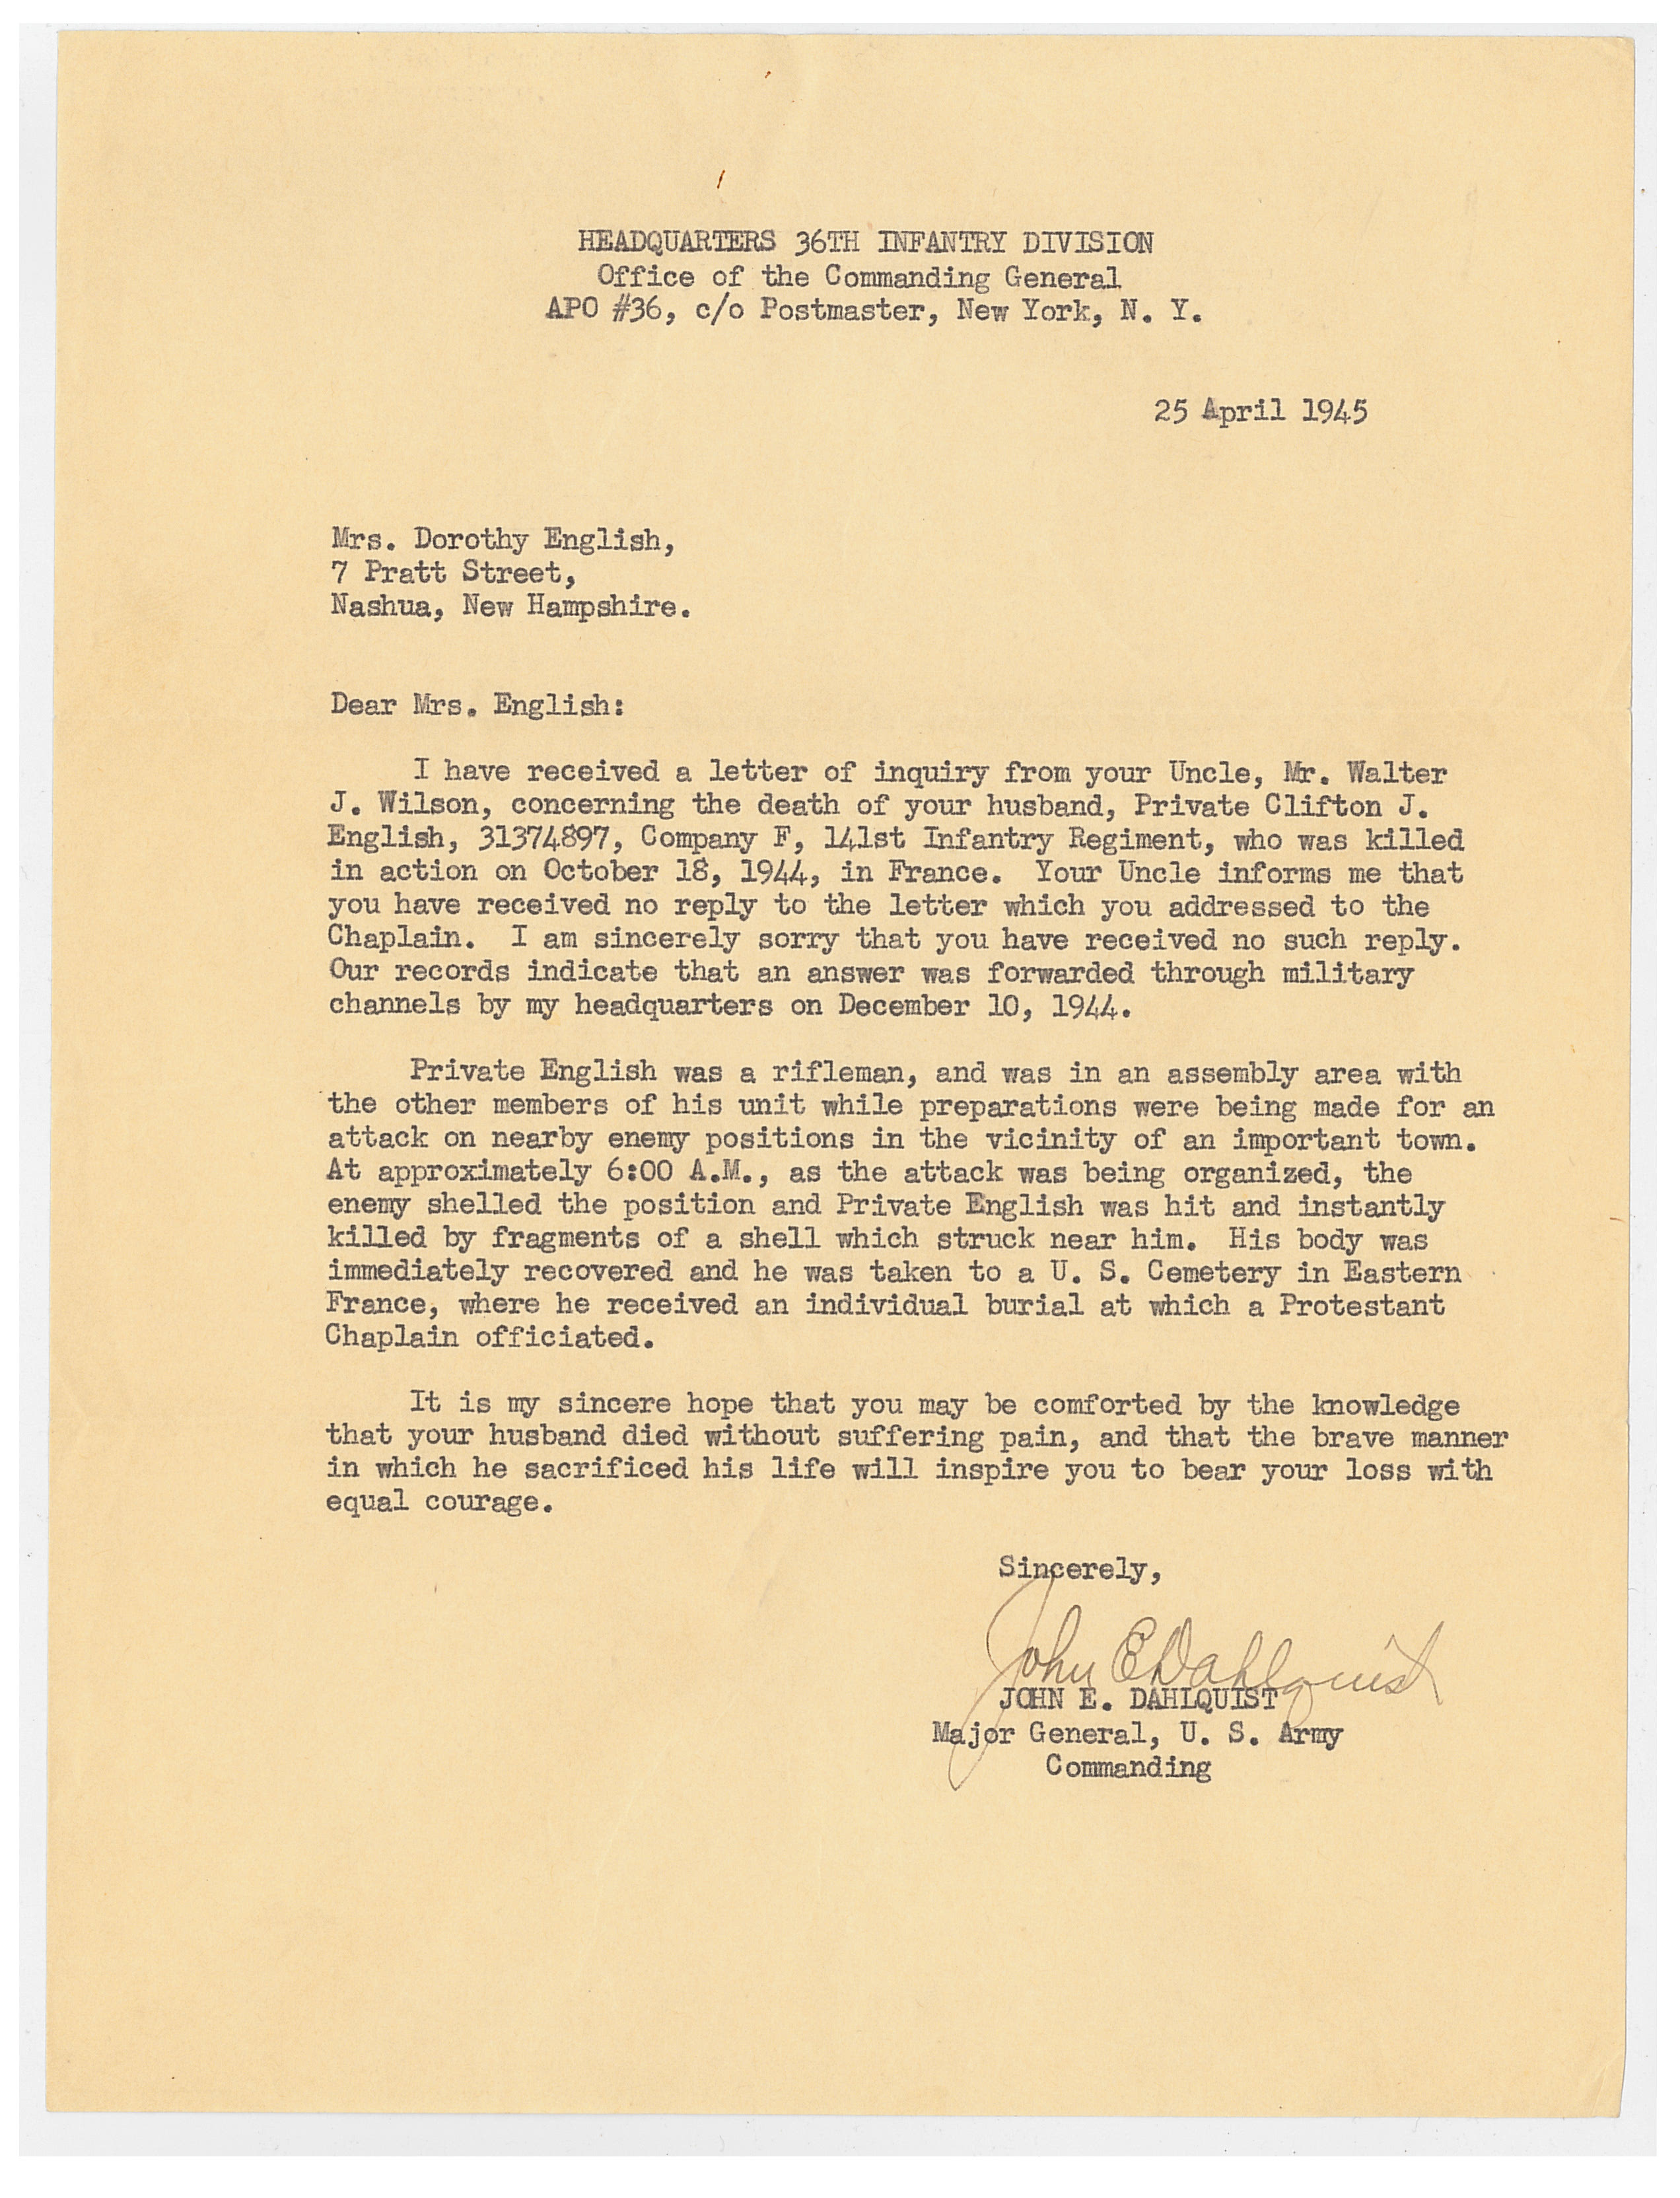 Letter from General Dahlquist